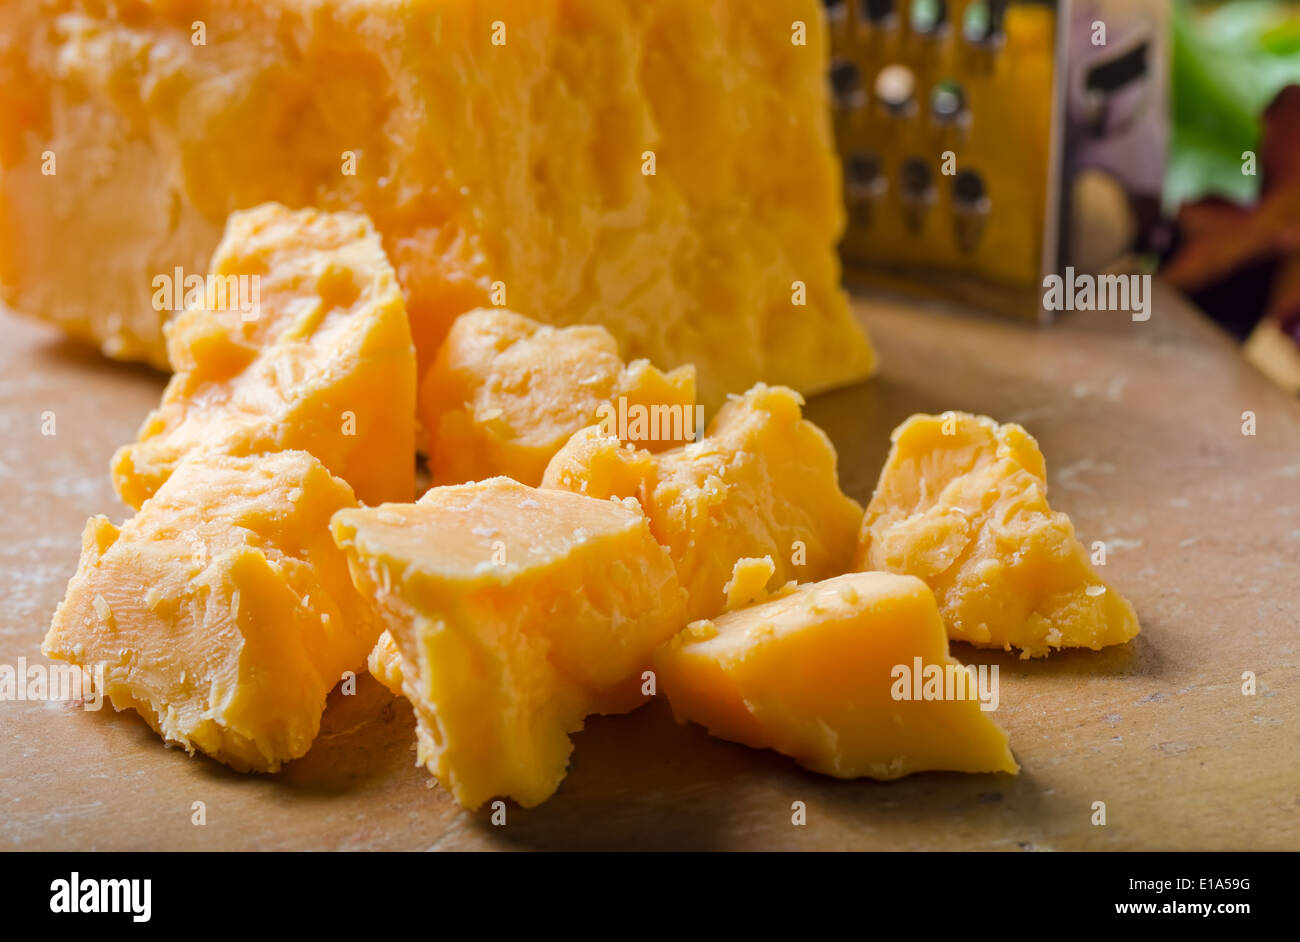 A grouping of crumbled cheddar cheese. - Stock Image